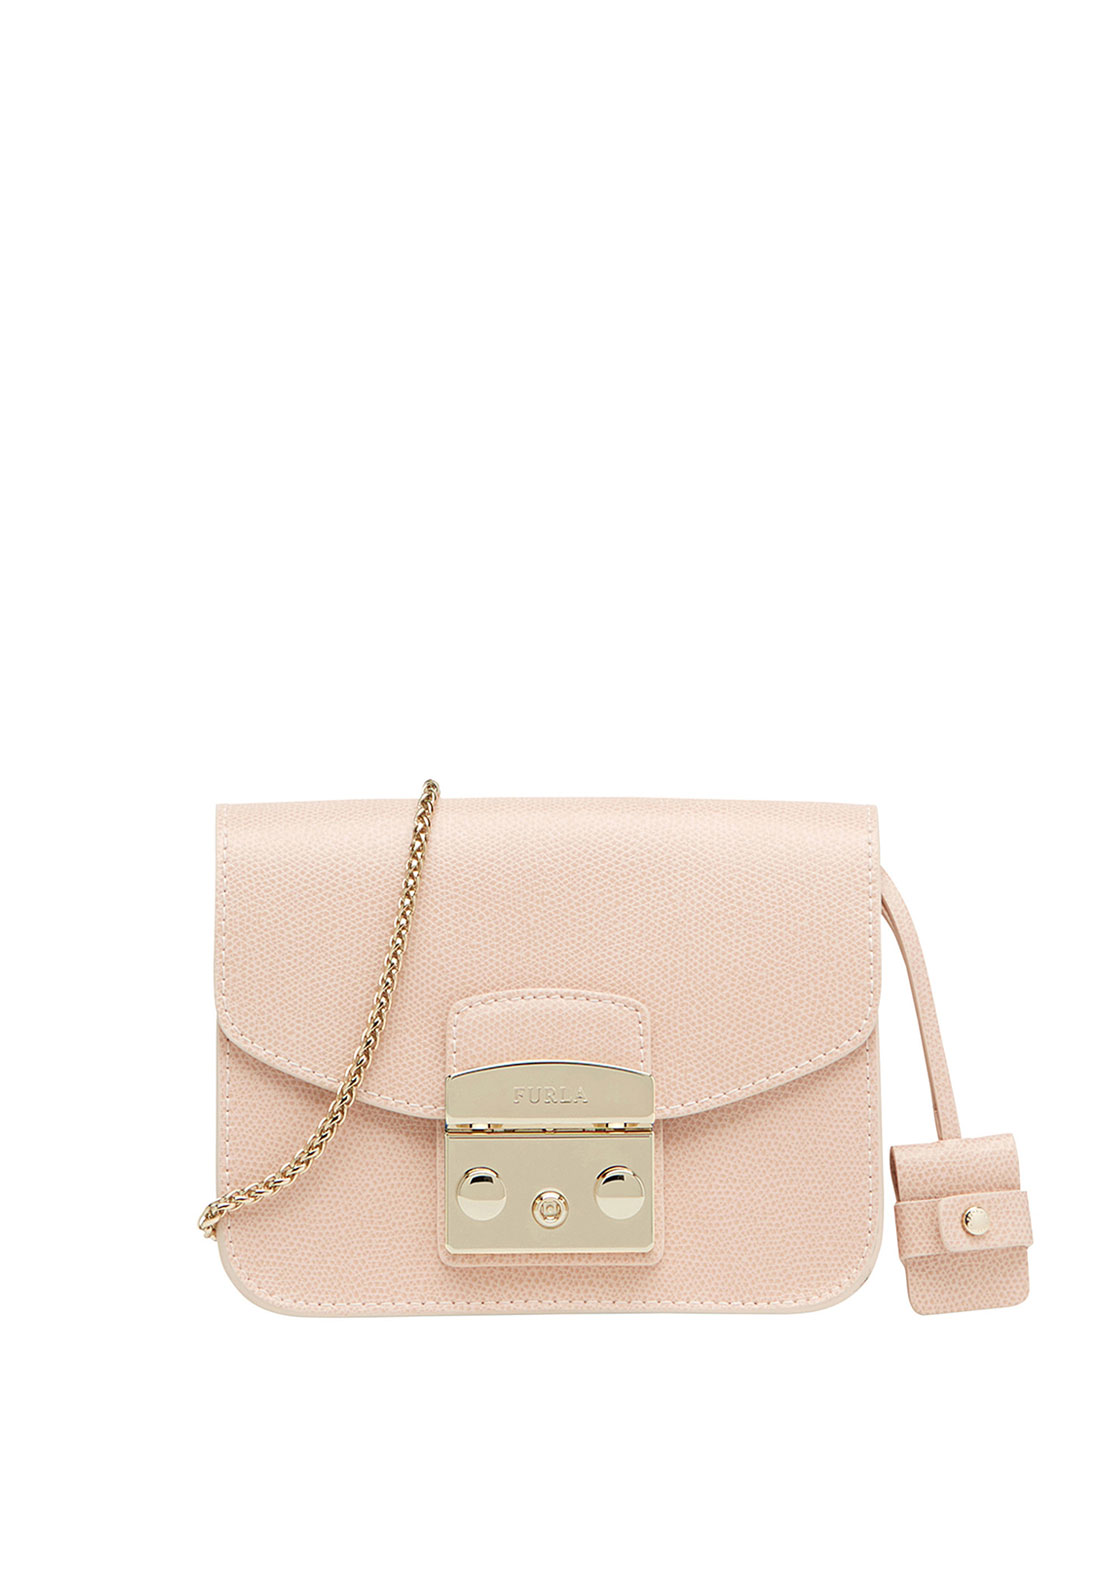 Furla Metropolis Leather Crossbody Mini Bag, Pink